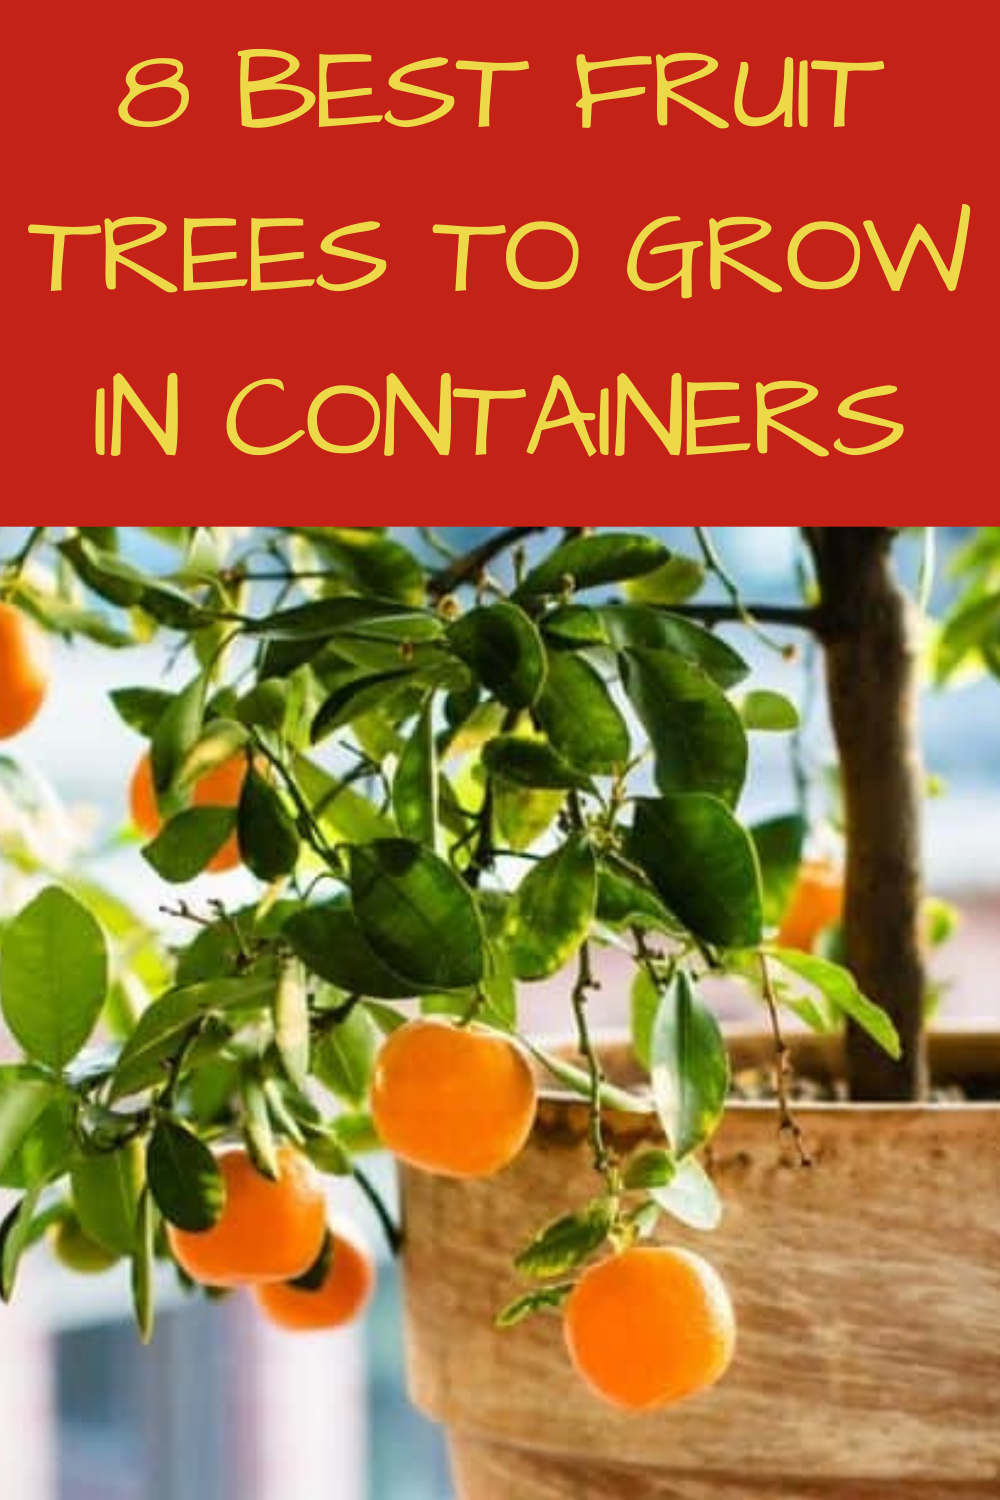 8 Best Fruit Trees To Grow In Containers Gardening Sun Fruit Trees Container Gardening Best Fruits